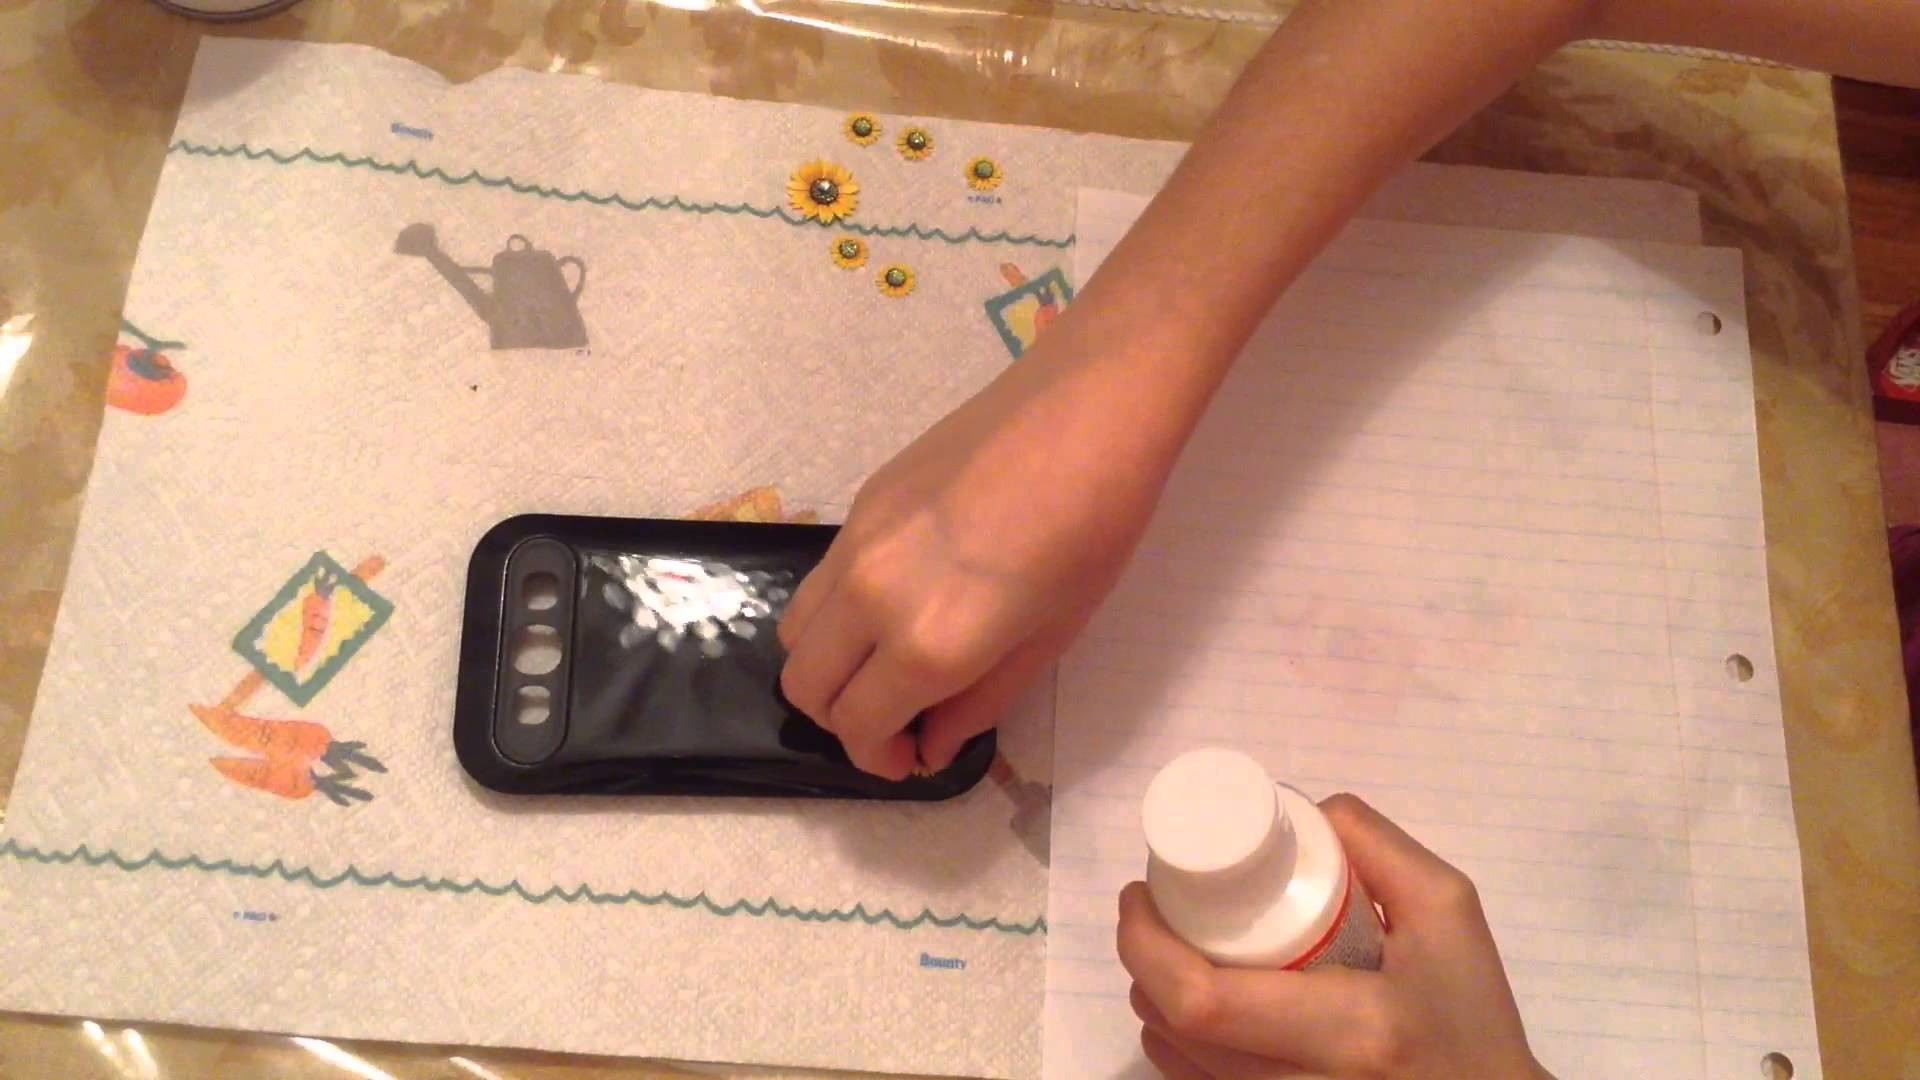 Samsung Galaxy S3 - How to Design your PHONE CASE Tutorial